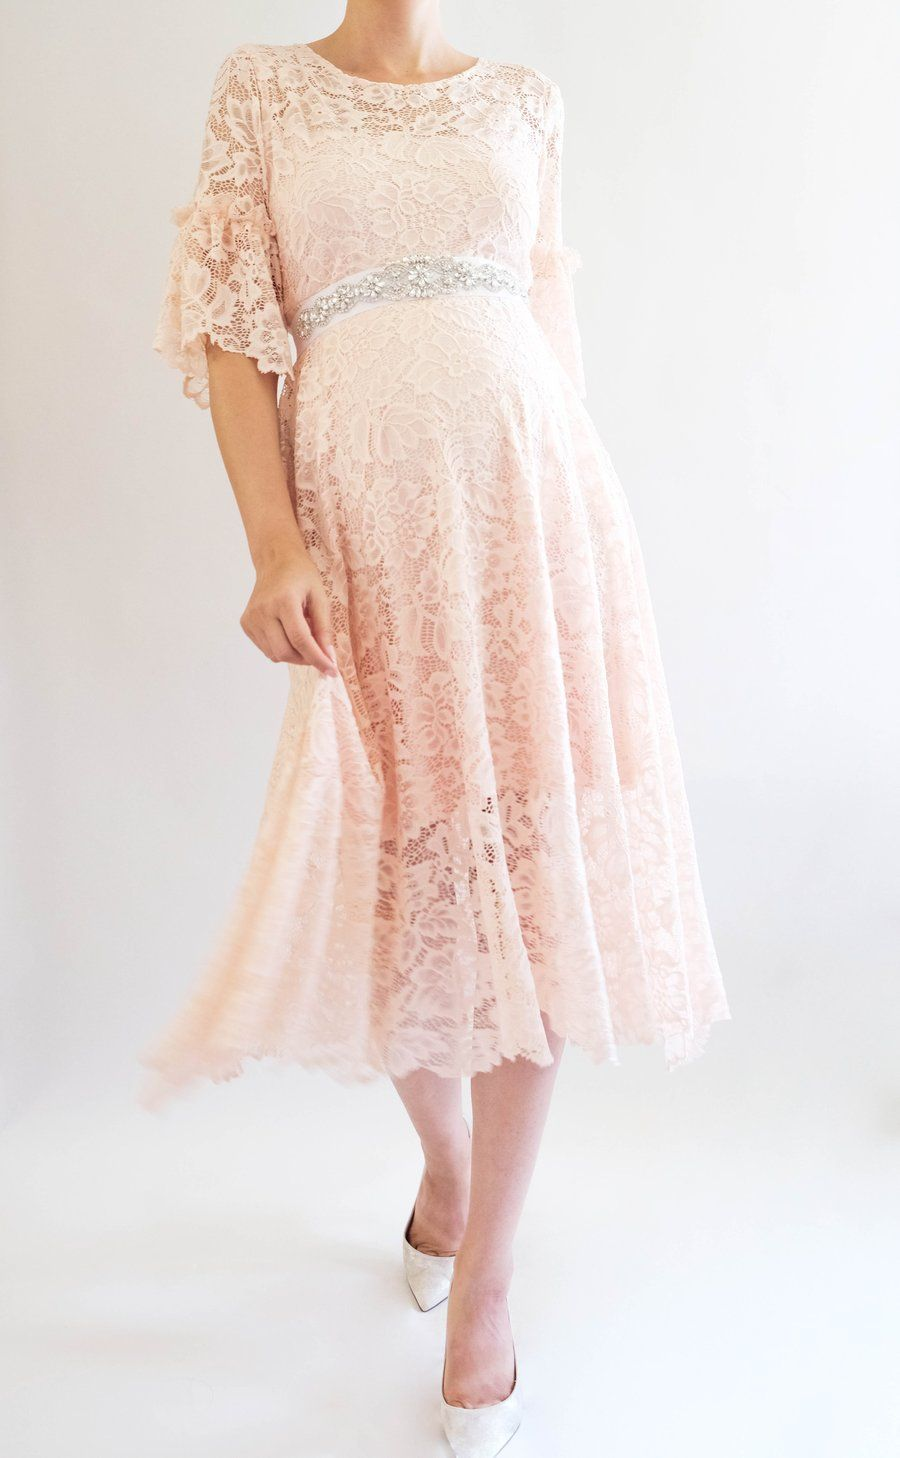 Chloe preorder in stylish maternity outfits pinterest